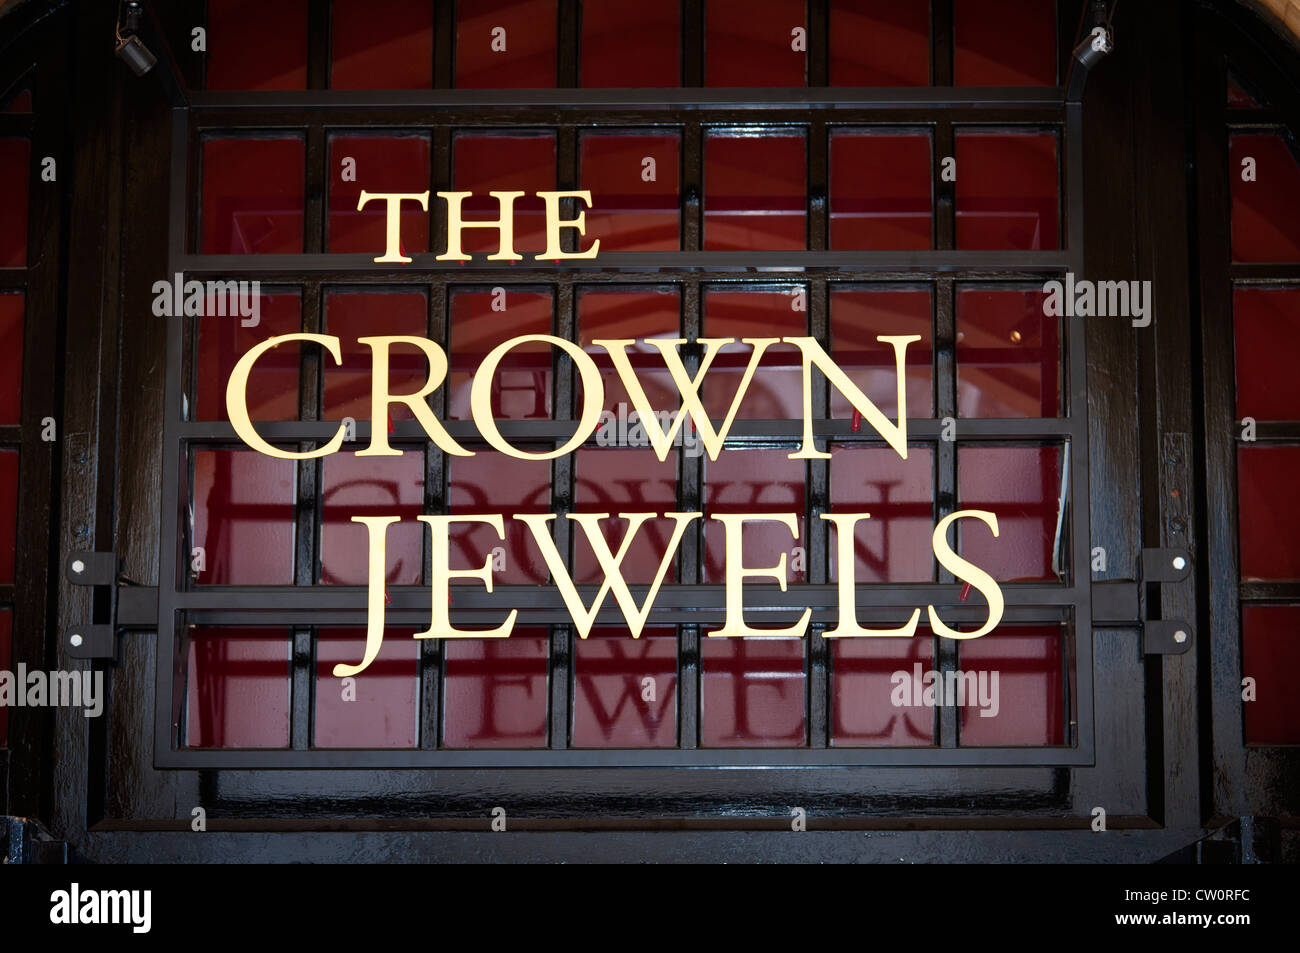 THE CROWN JEWELS sign above the entrance of the Jewel House building where the Crown Jewels are guarded & kept. - Stock Image